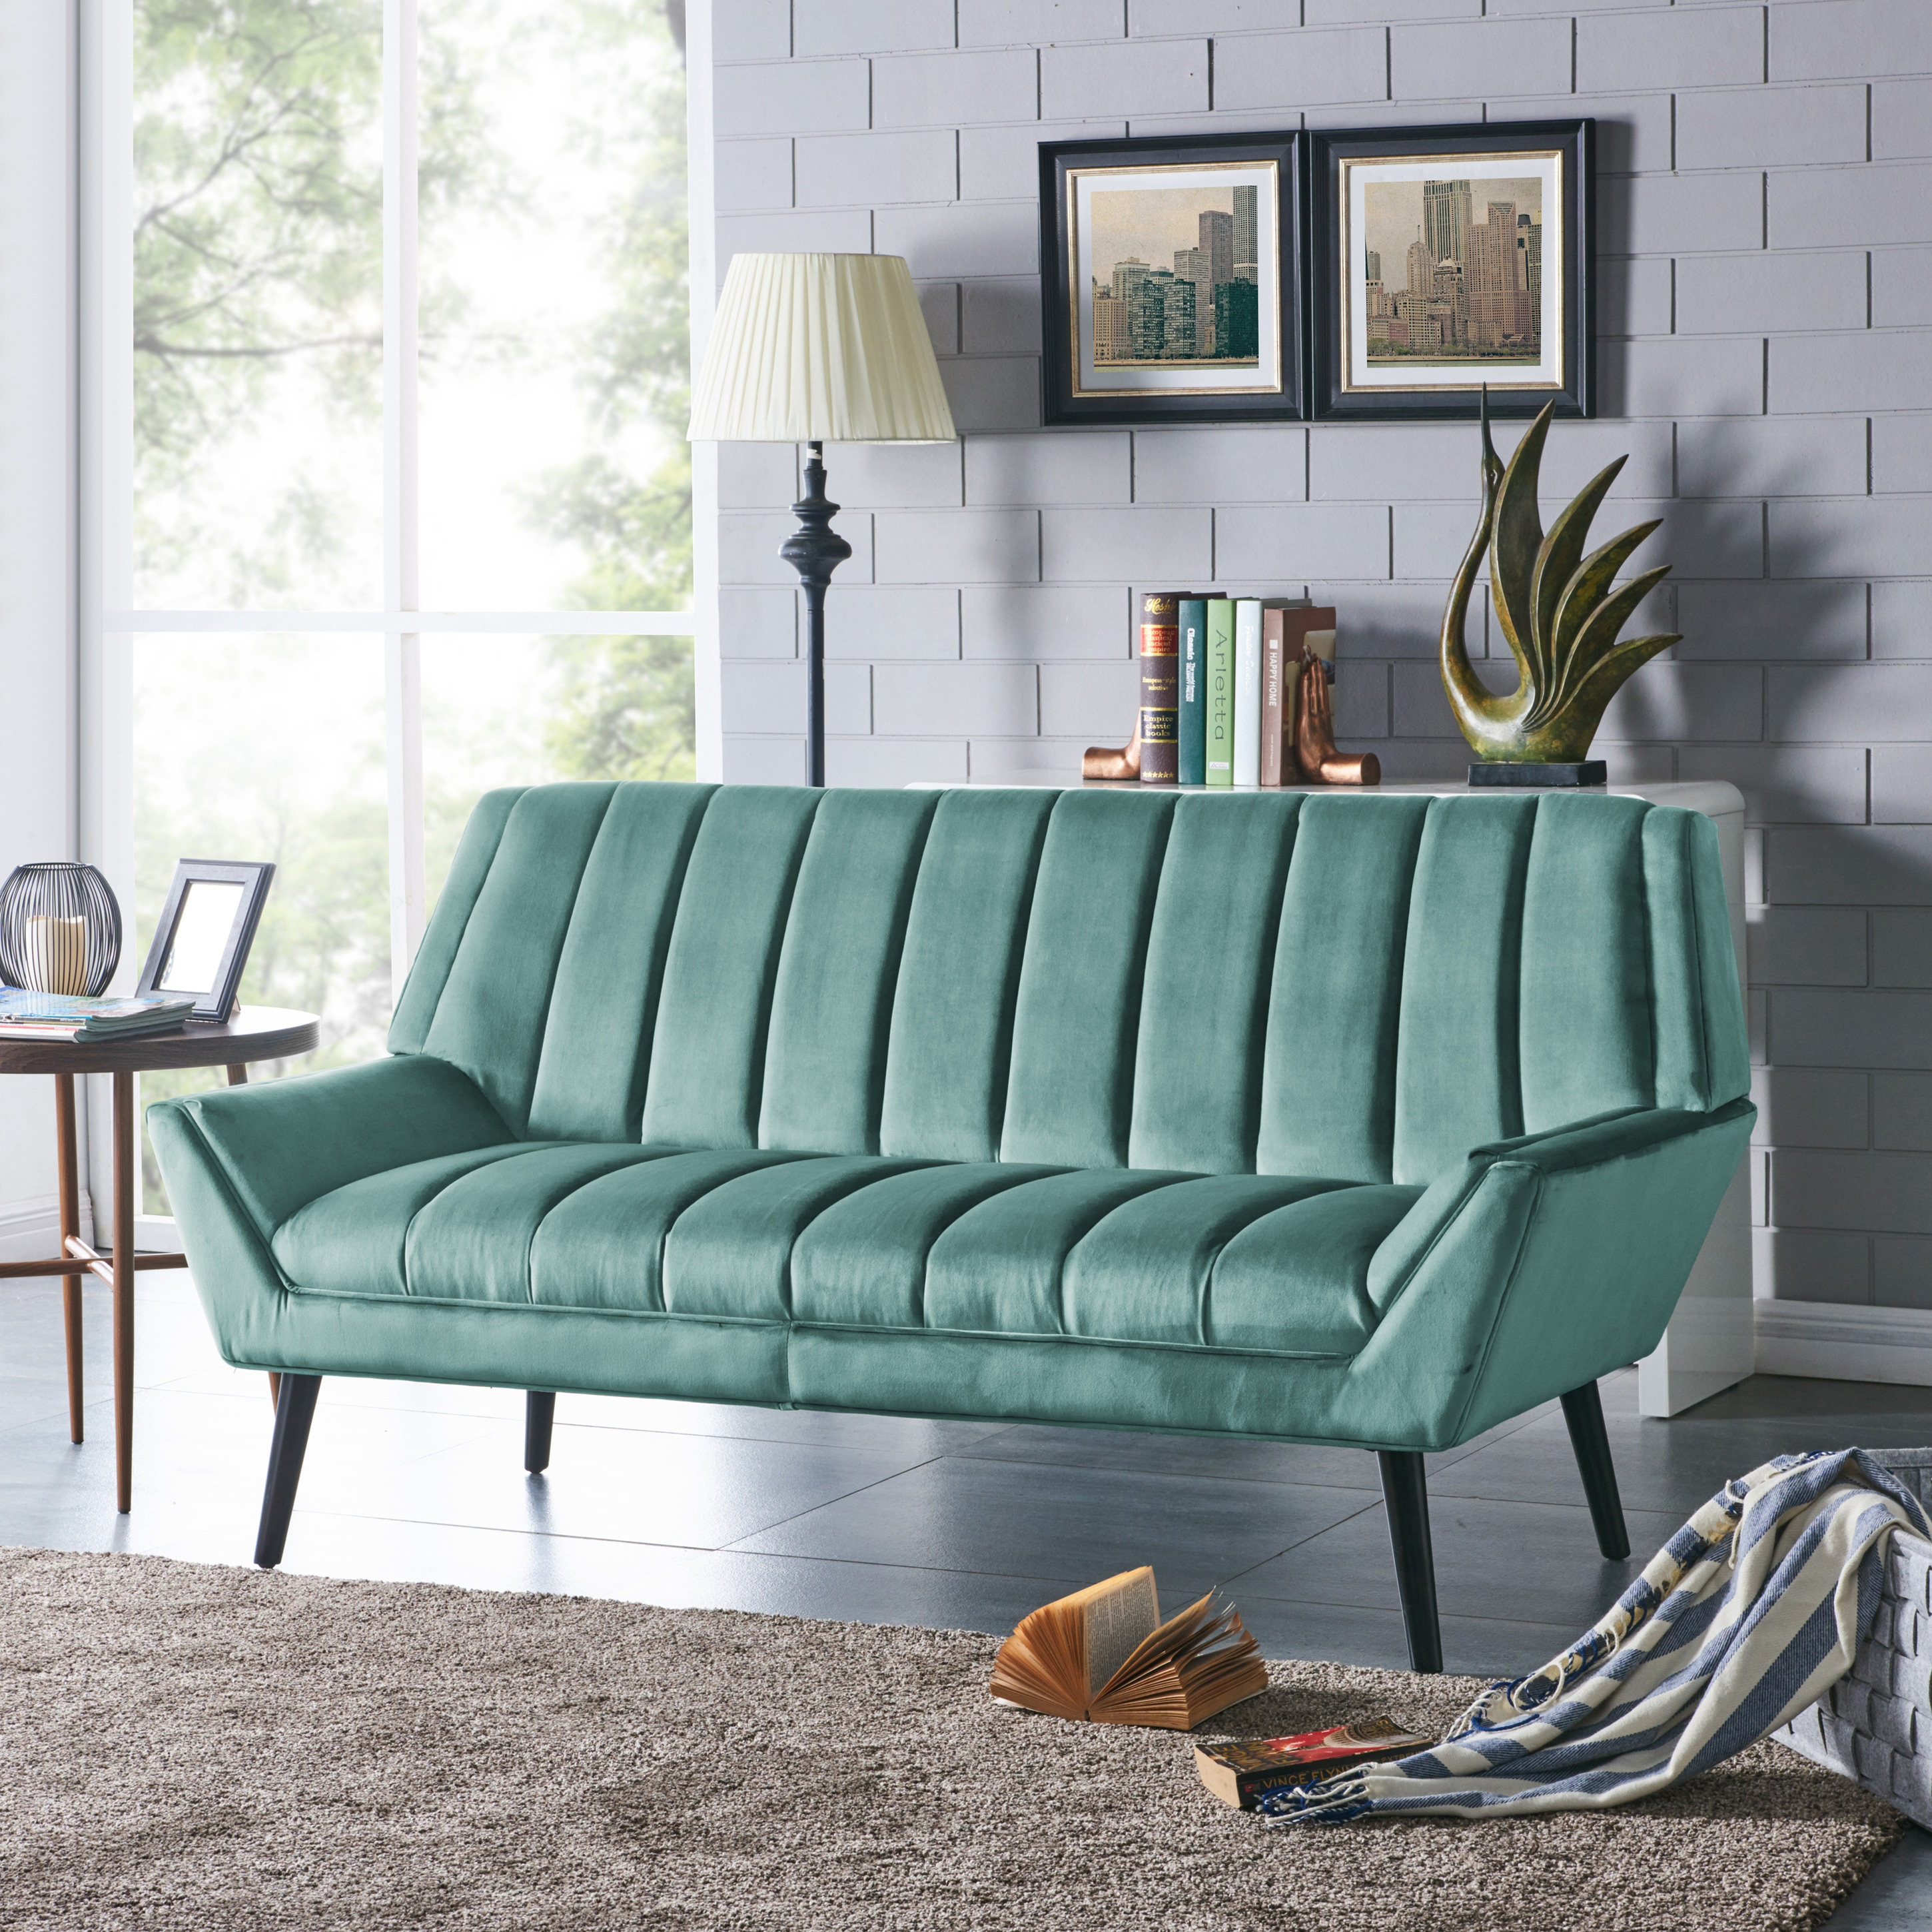 Turquoise Velvet Sofa Found The Best 19 Blue Velvet Sofas